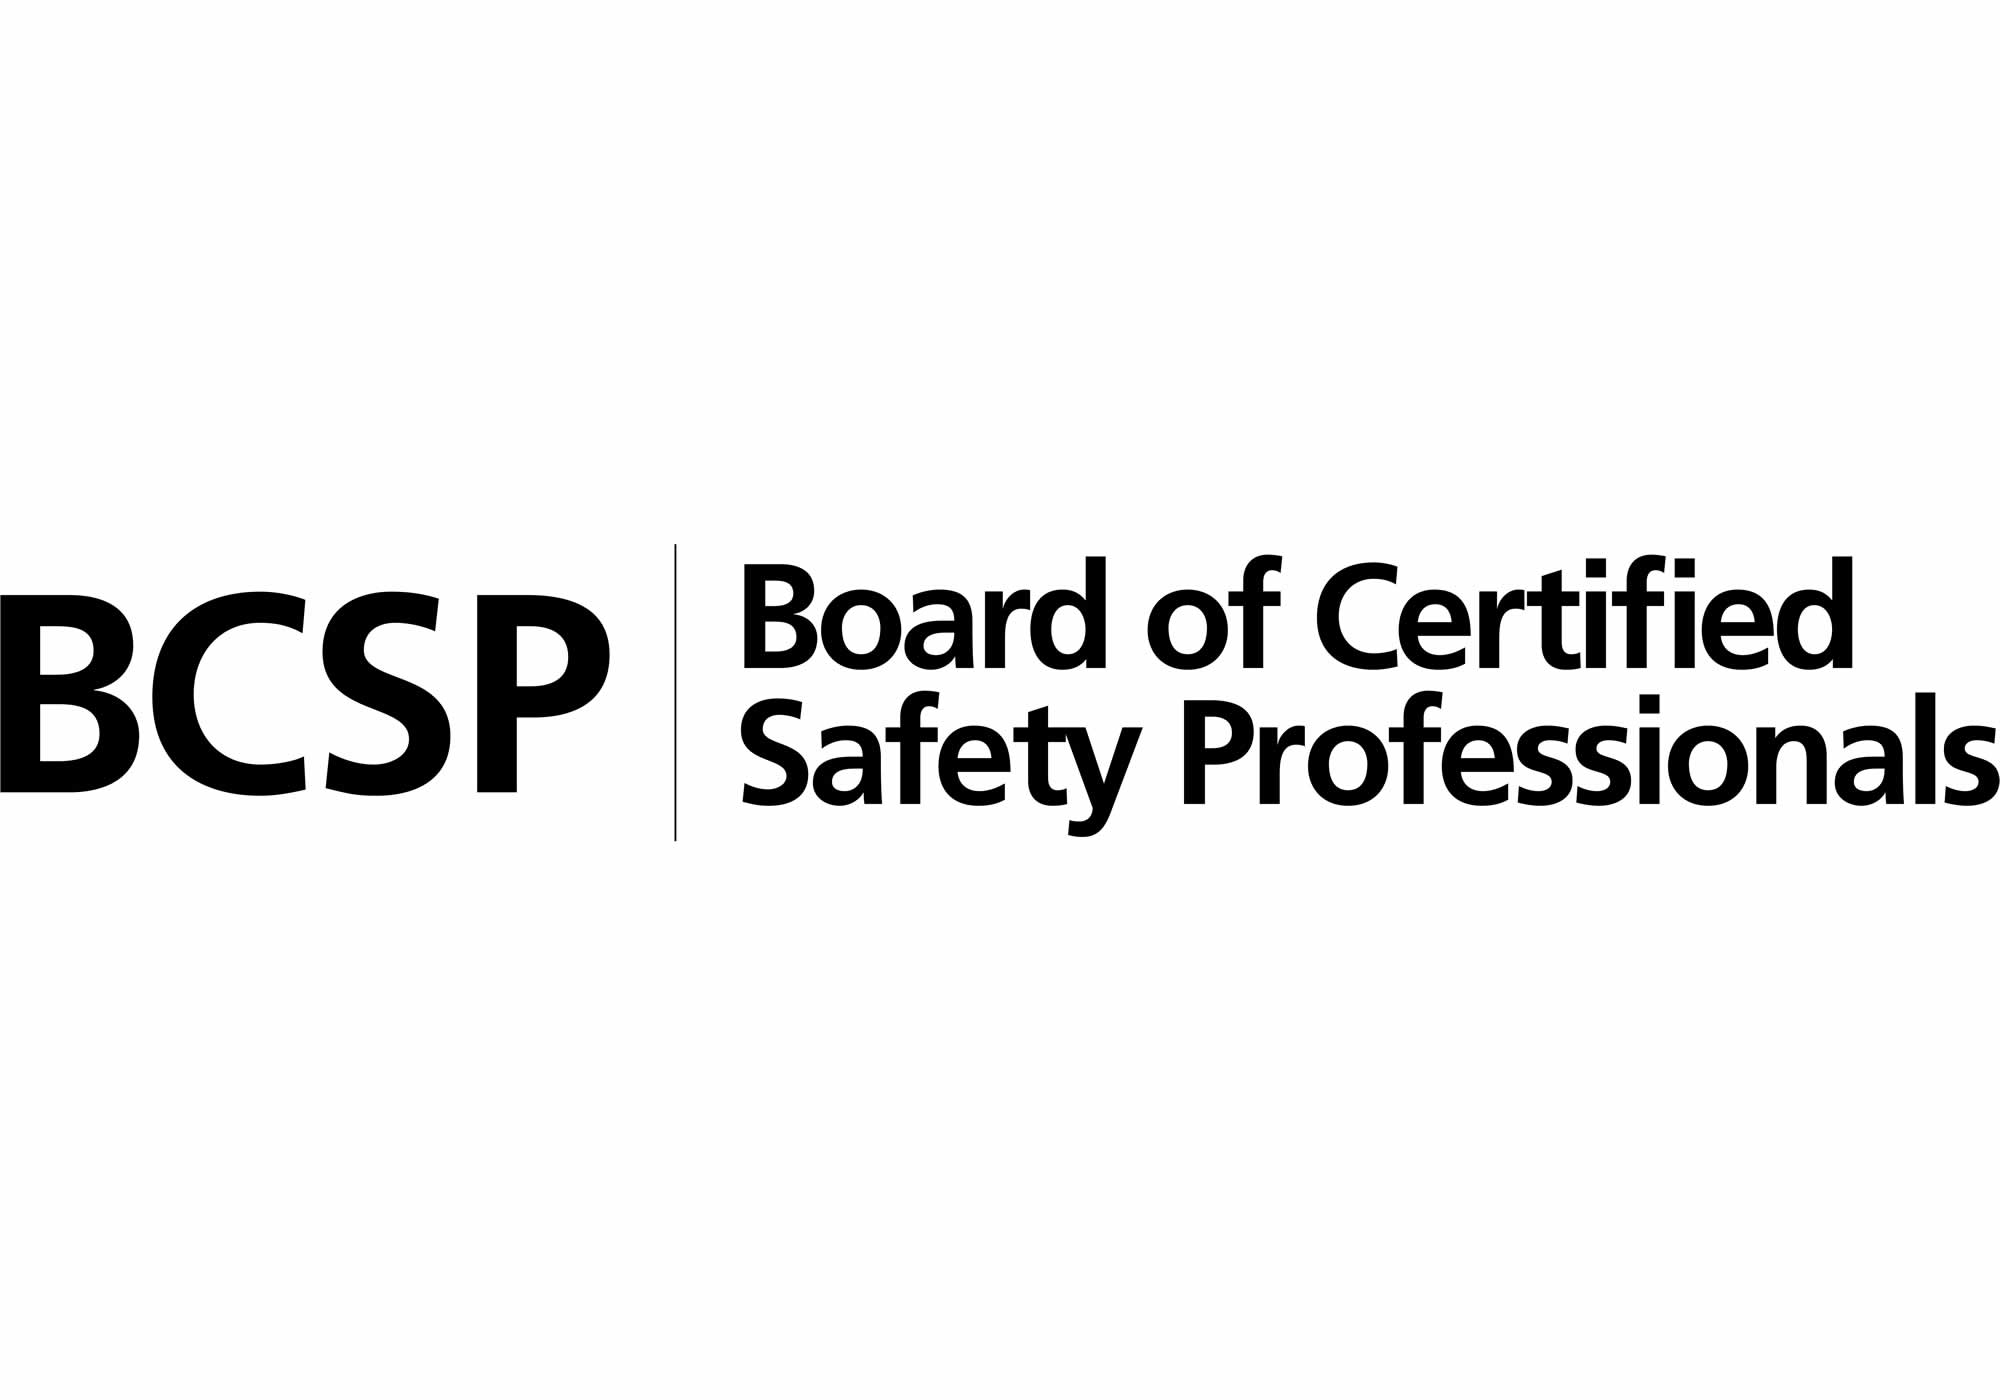 naem-2021-certifications-bcsp-board-of-certified-safety-professionals-1000x700